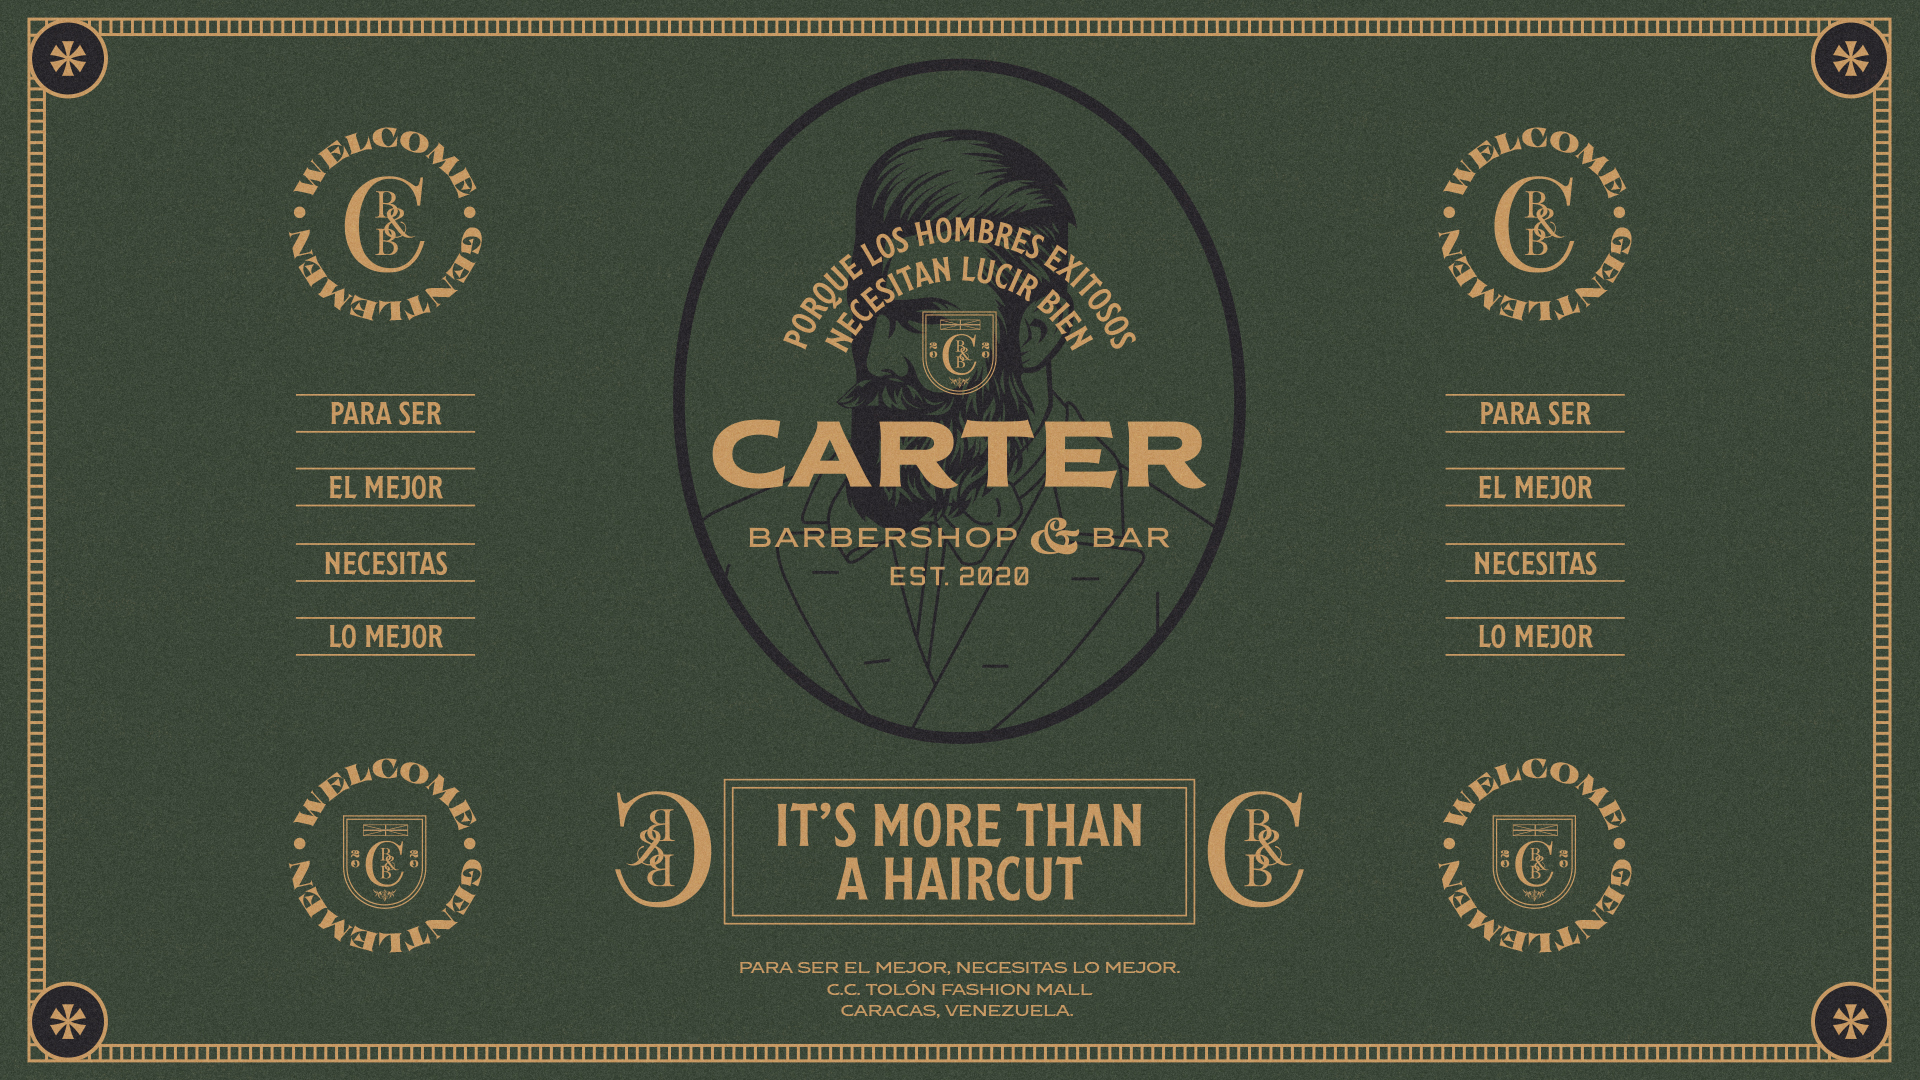 Carter Barbershop & Bar Brand Strategy and Visual Identity by Gabsuthe